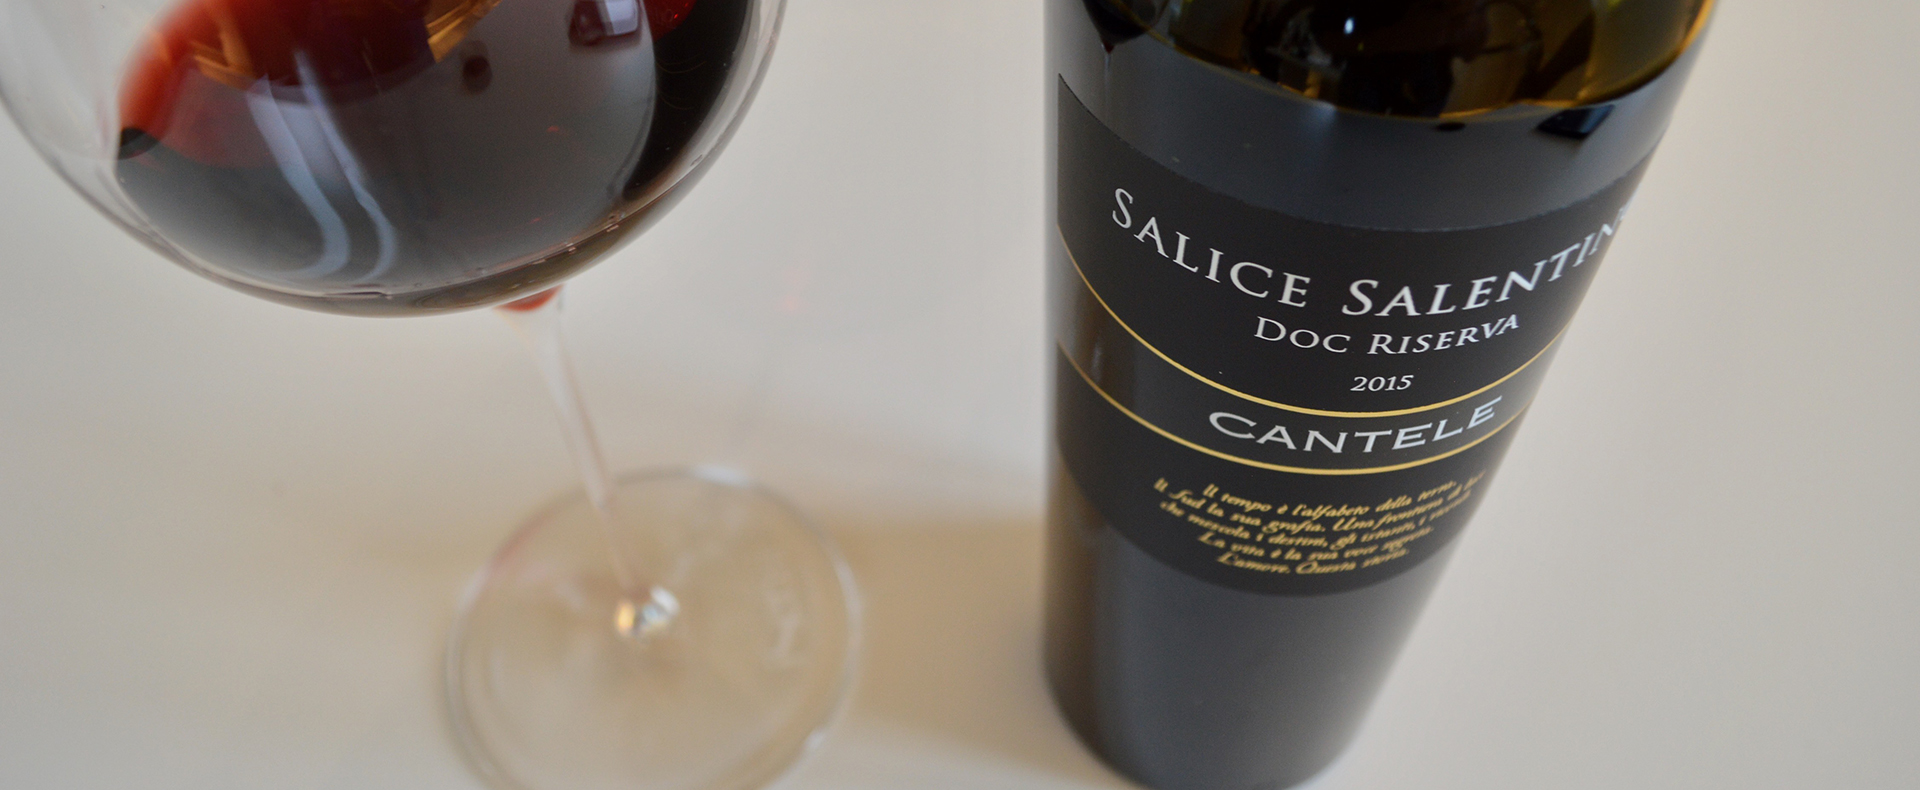 """Smart Buy"": Wine Spectator features Cantele Salice Salentino, 90 points"